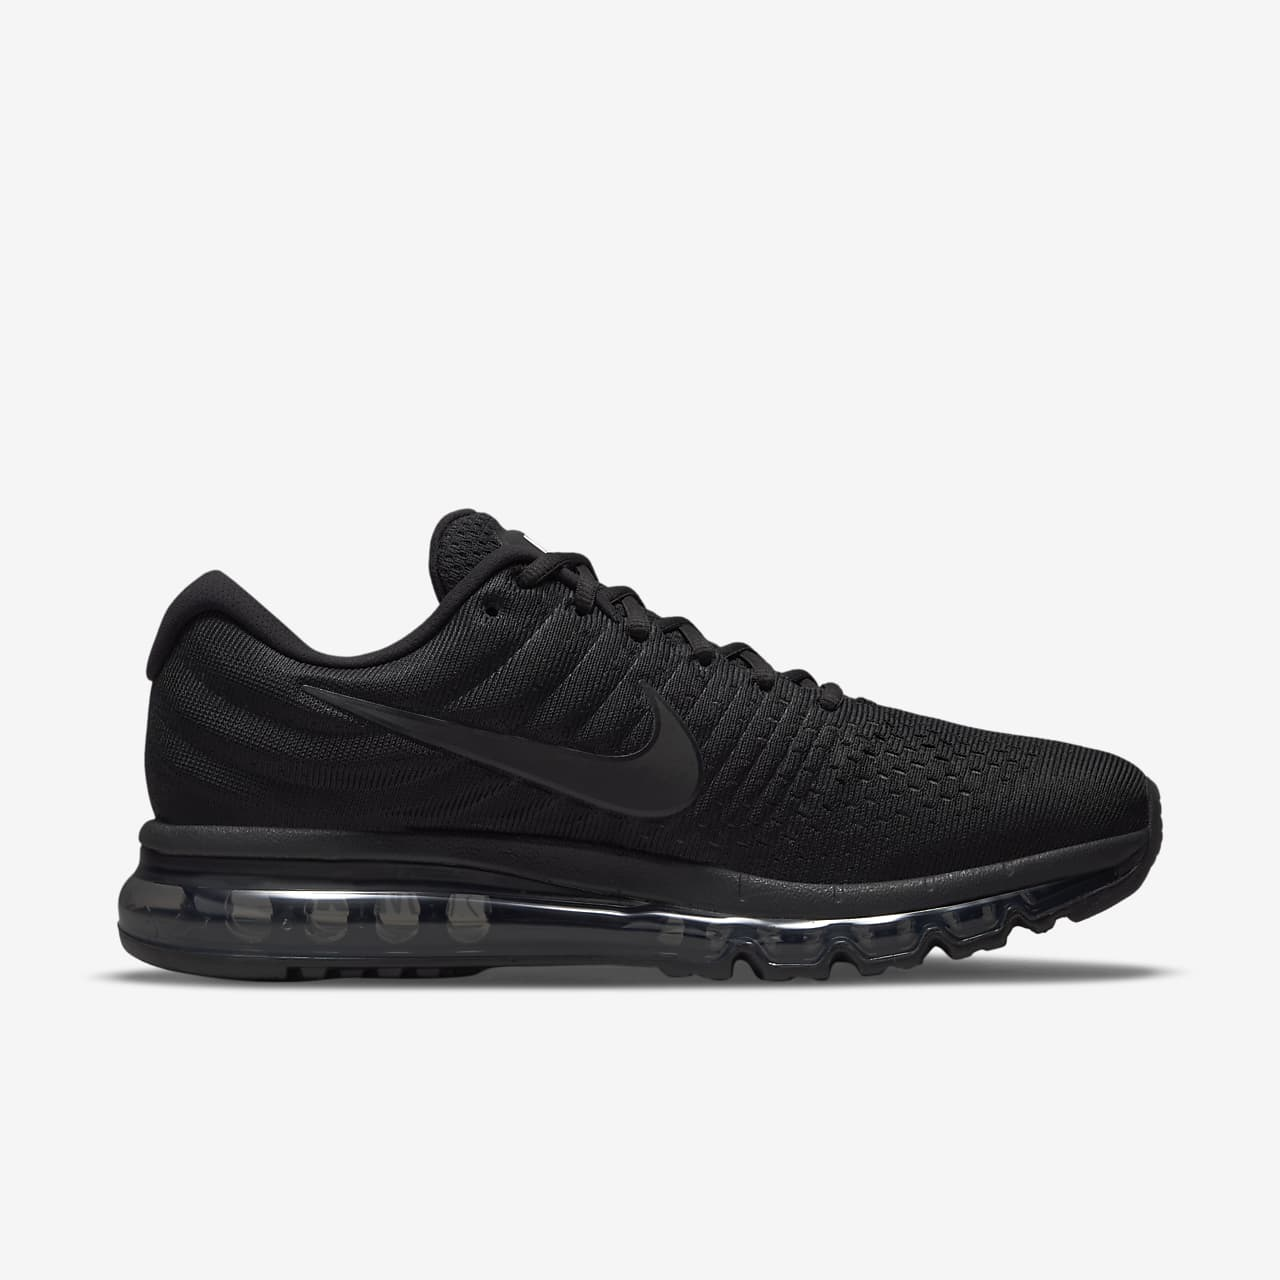 nike 2017 air max men's running sneaker nz